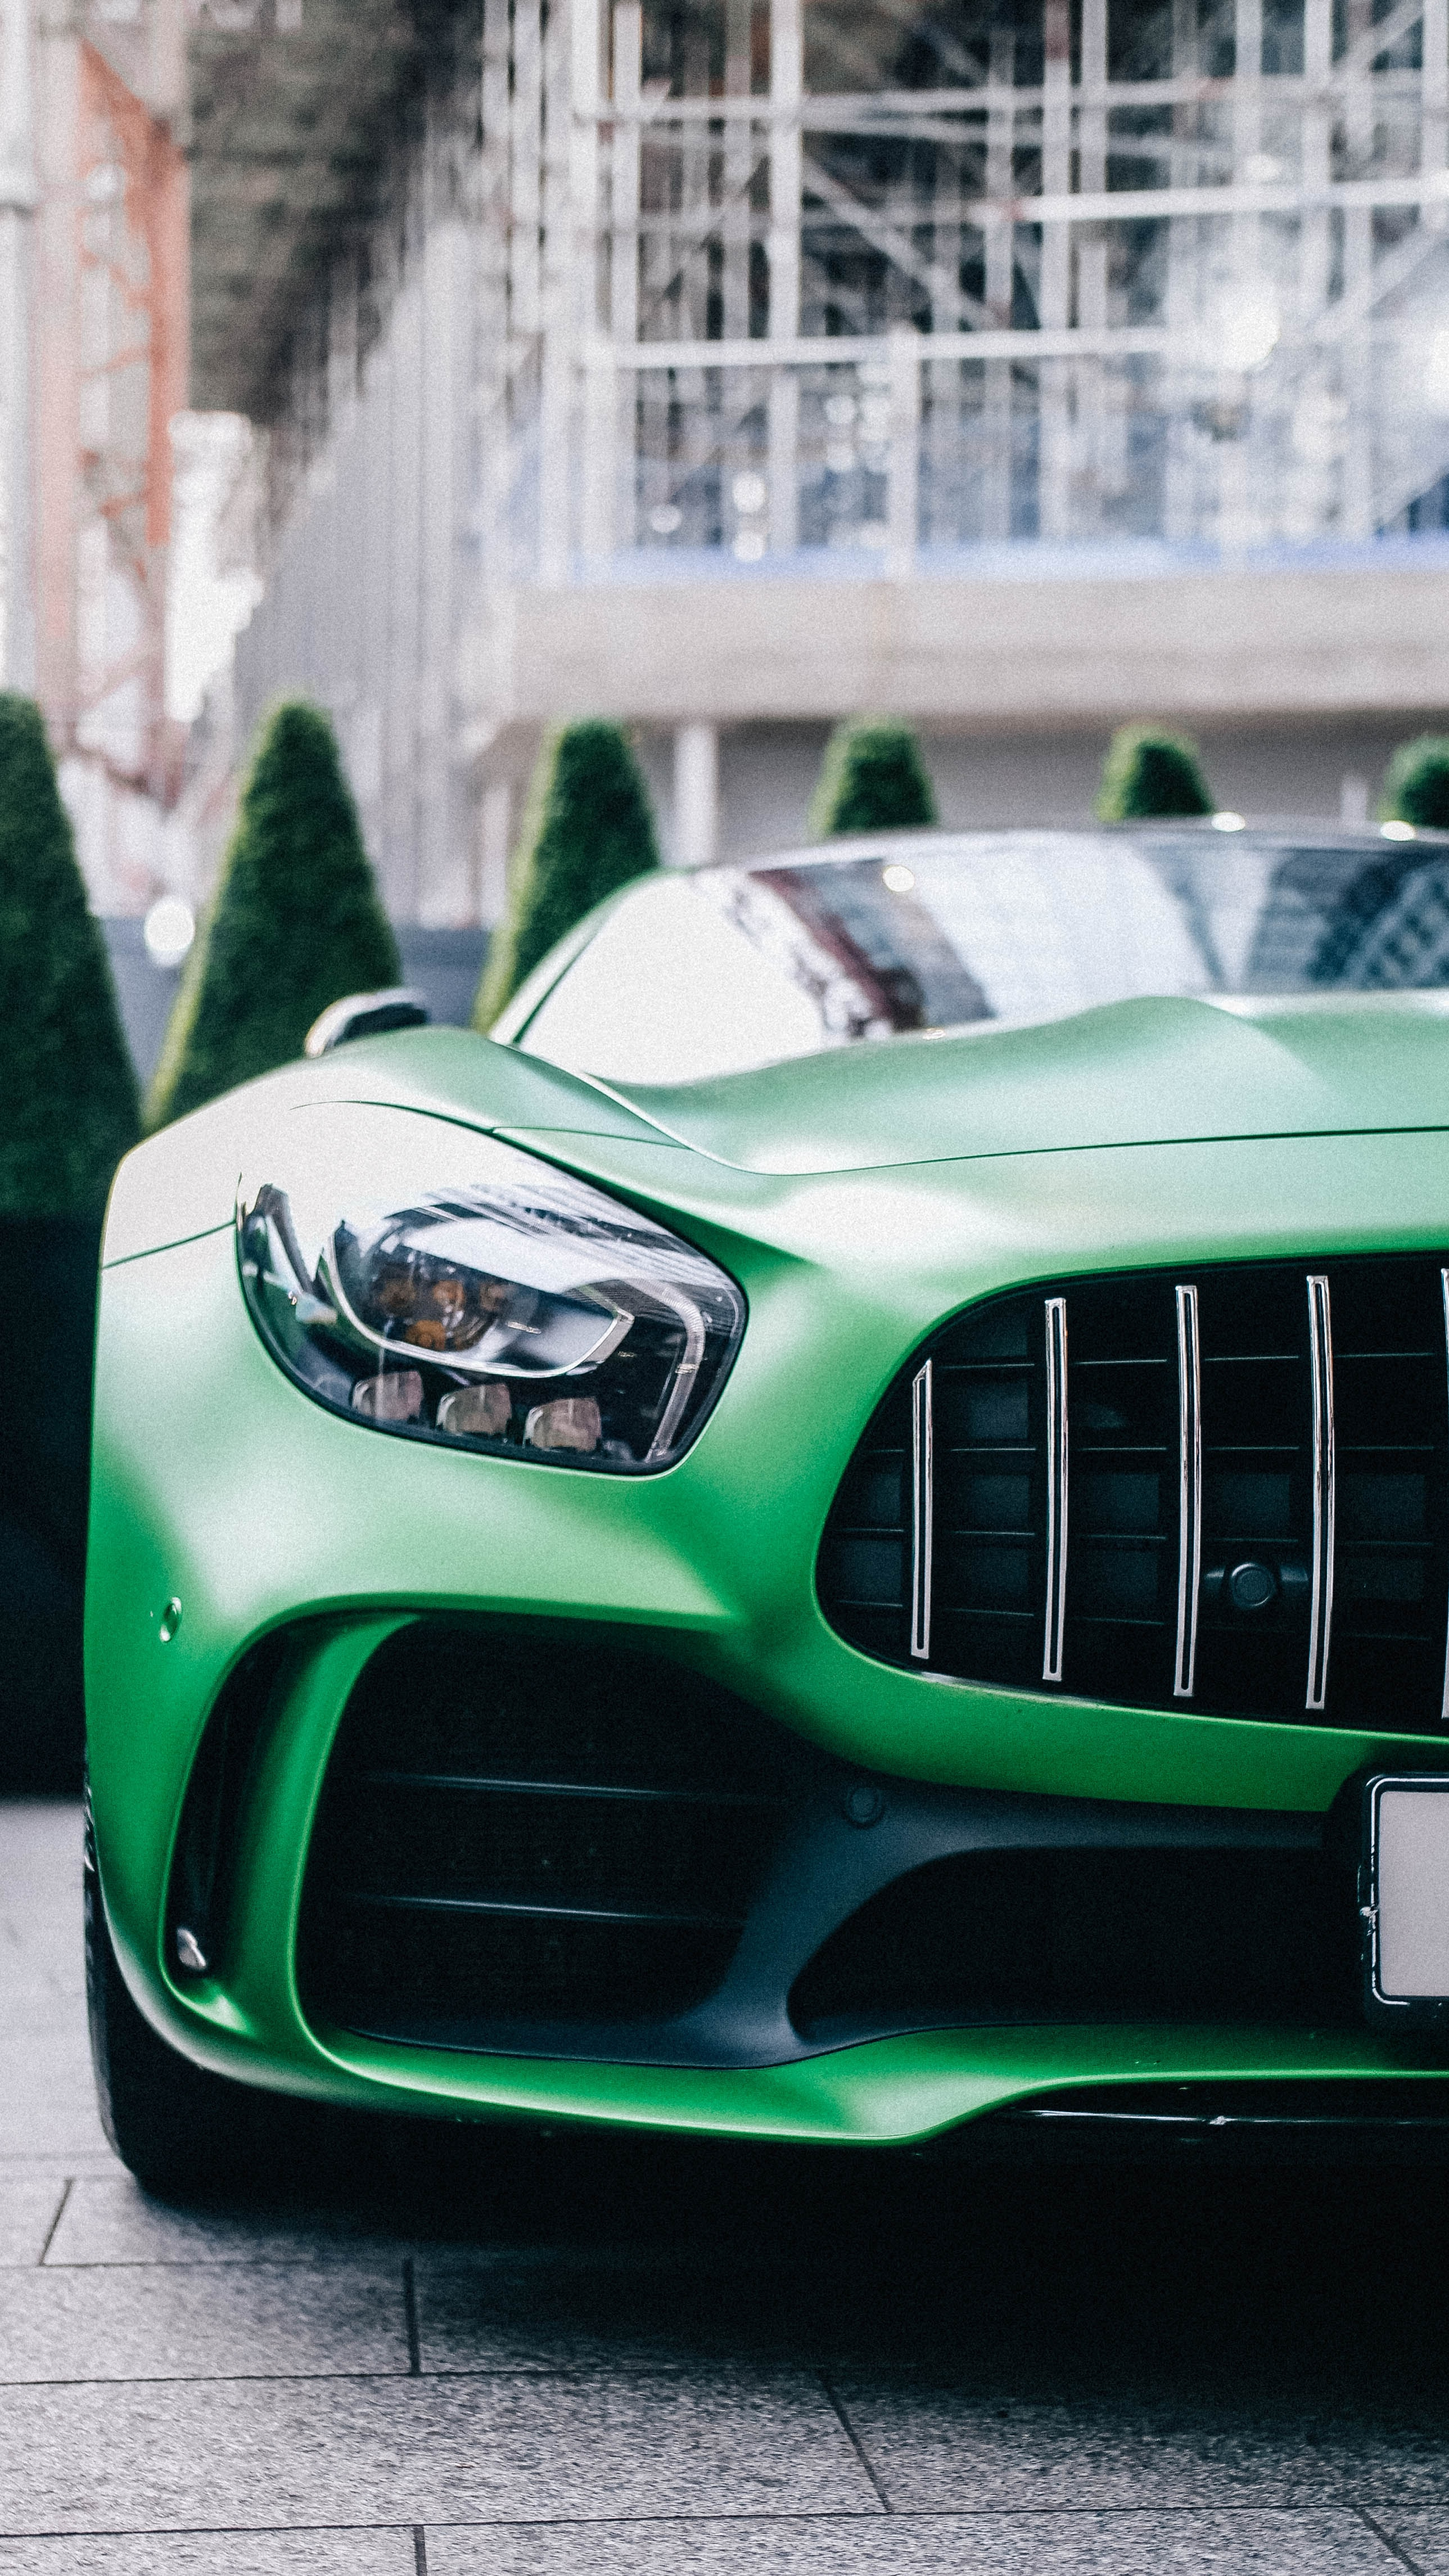 112052 free wallpaper 2160x3840 for phone, download images Sports, Cars, Car, Front View, Machine, Sports Car, Supercar 2160x3840 for mobile